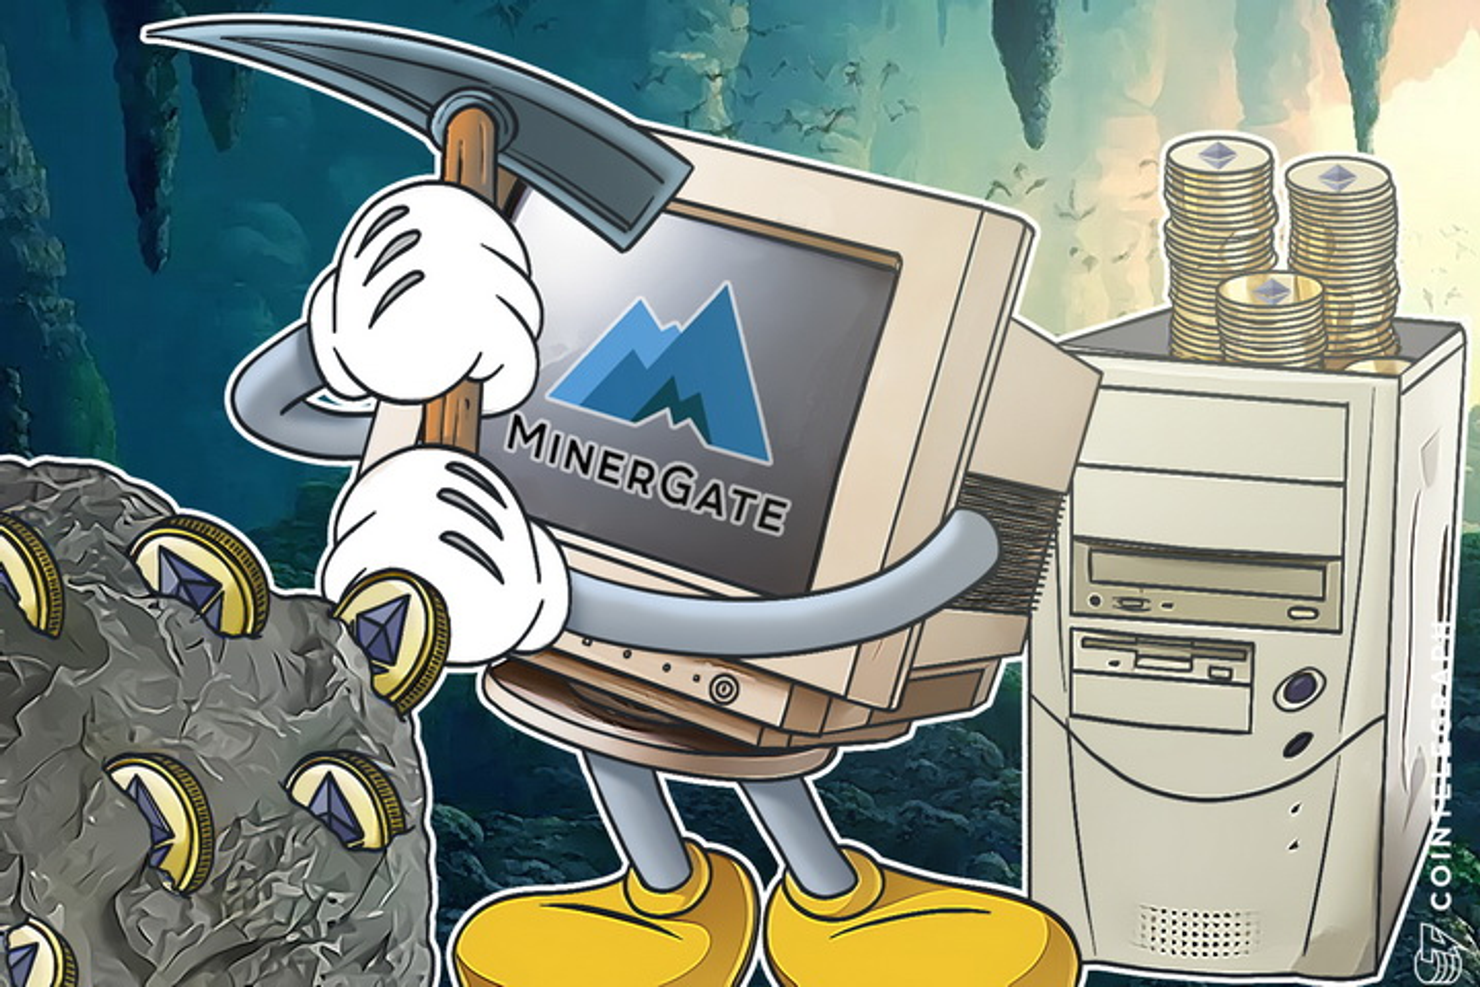 Ethereum Mining Made Possible on Any PCs | Cointelegraph